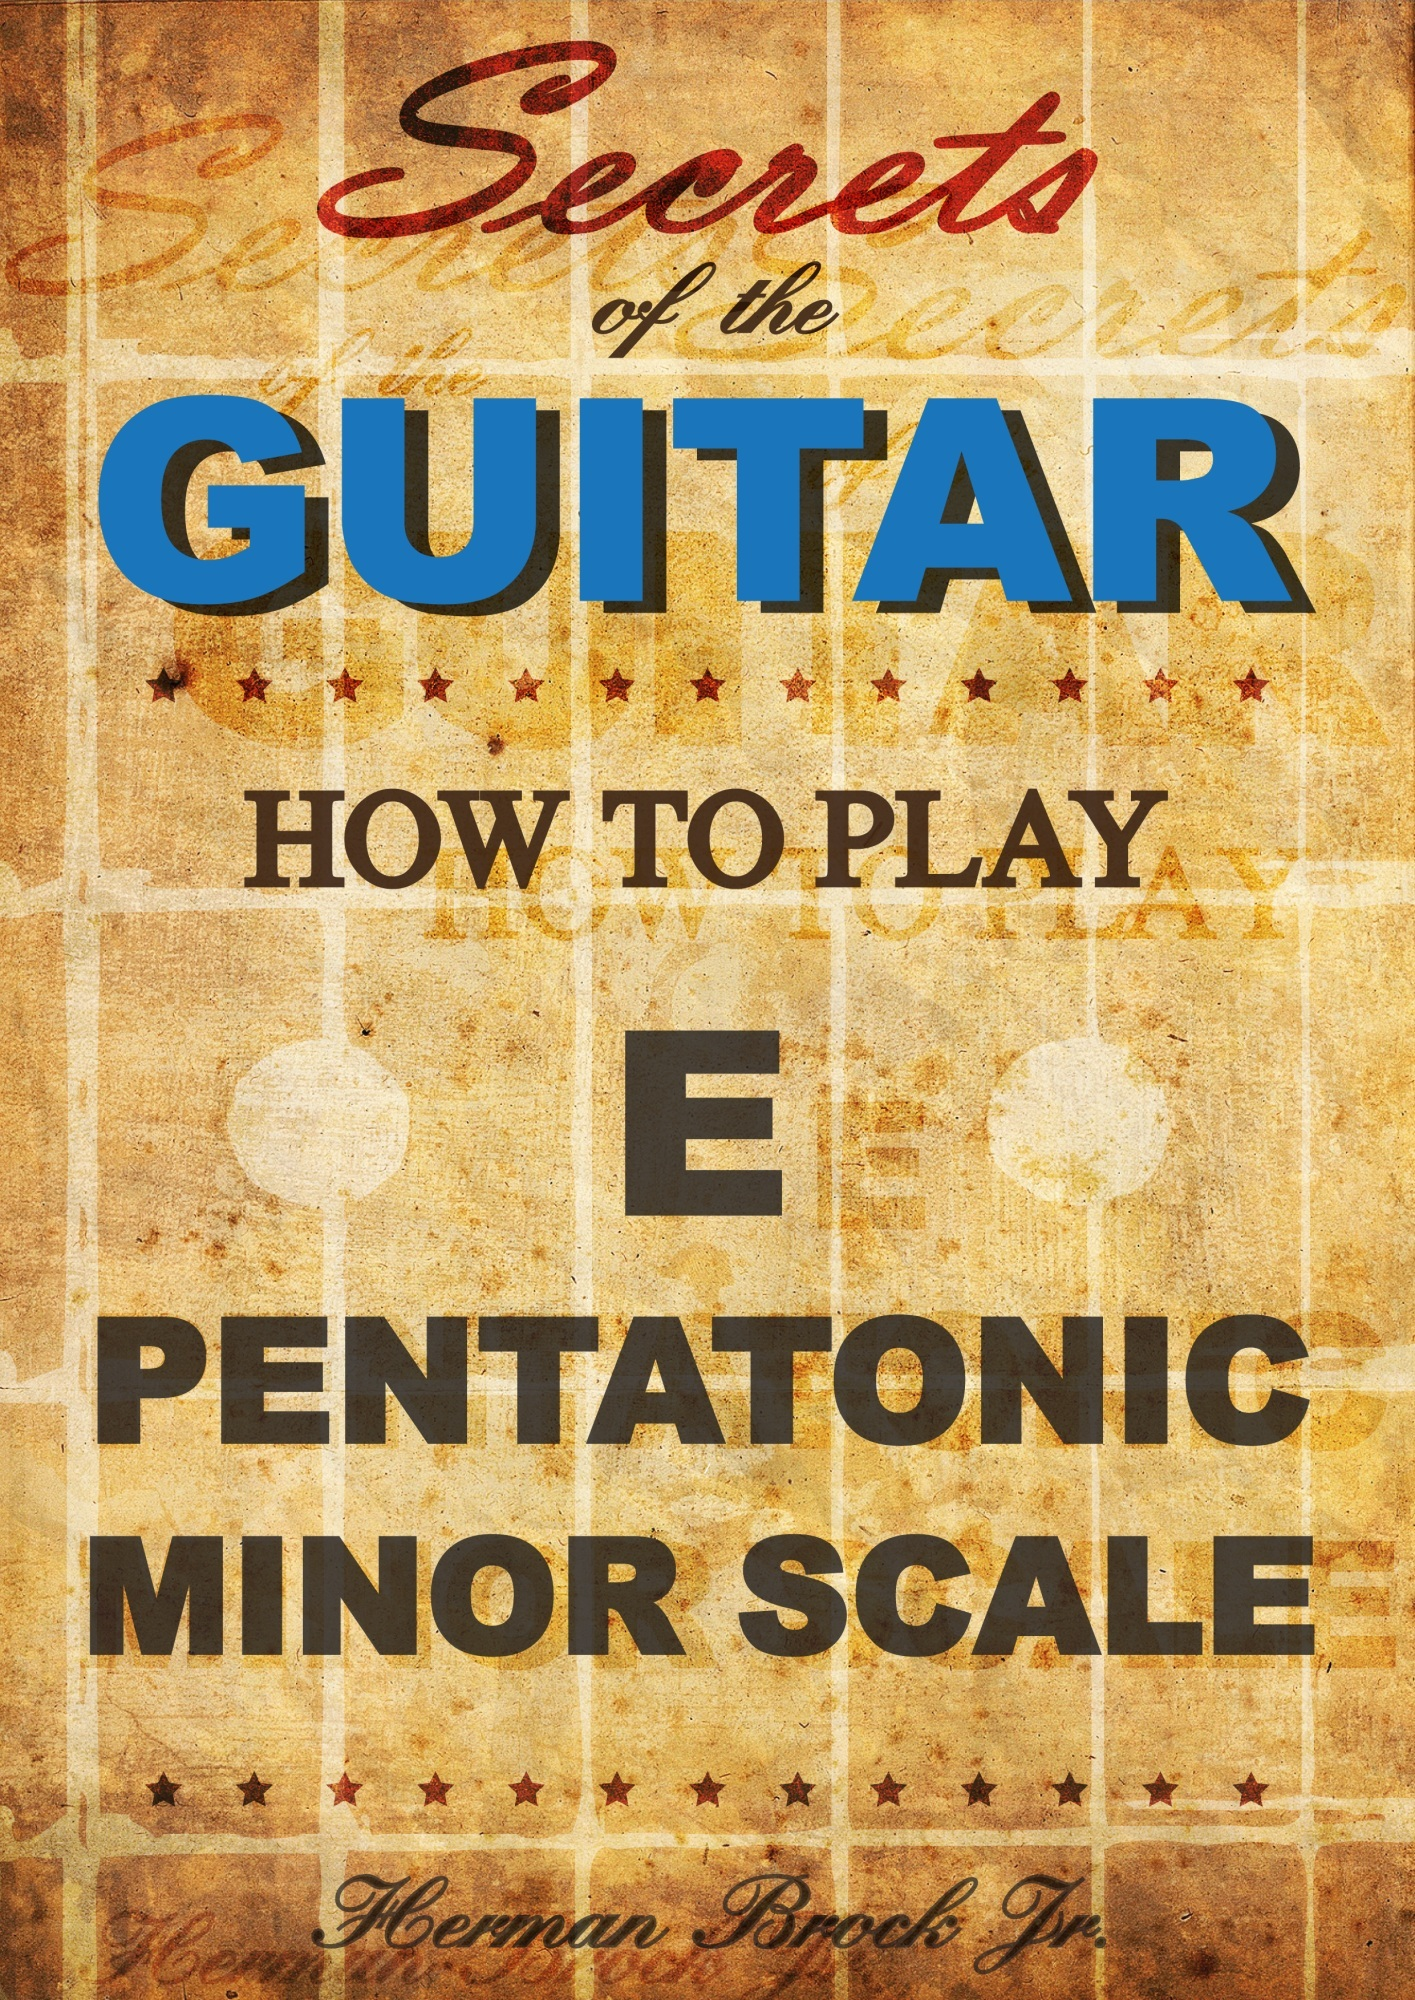 How to play the E pentatonic minor scale: Secrets of the Guitar